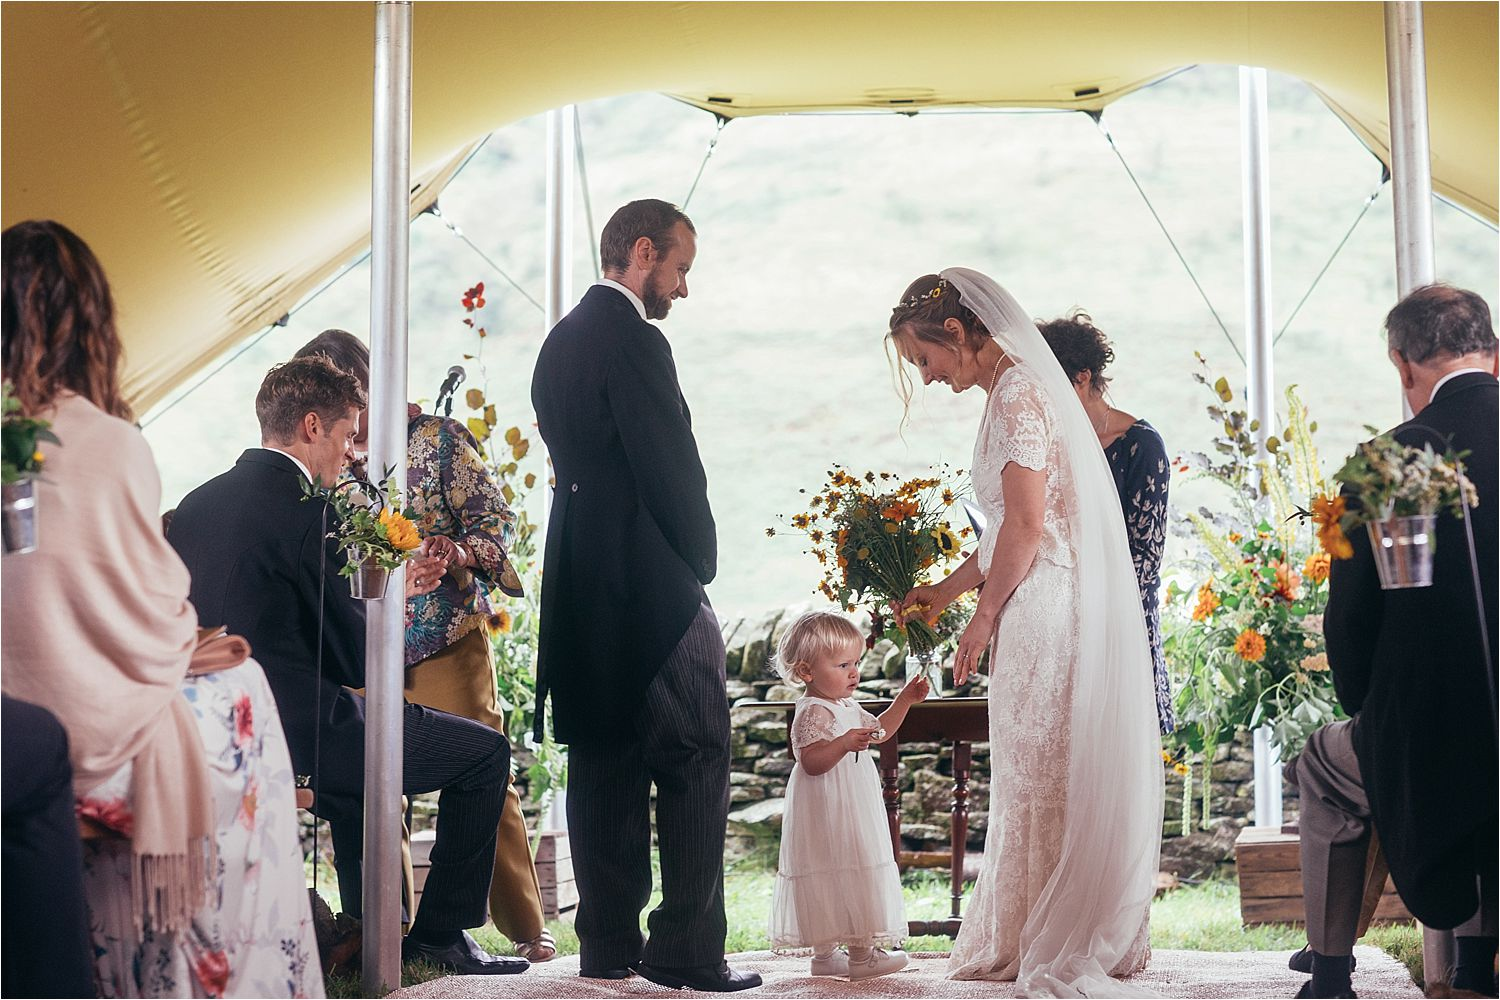 Bride, groom and flower girl at wedding ceremony in Big Chief Tipi